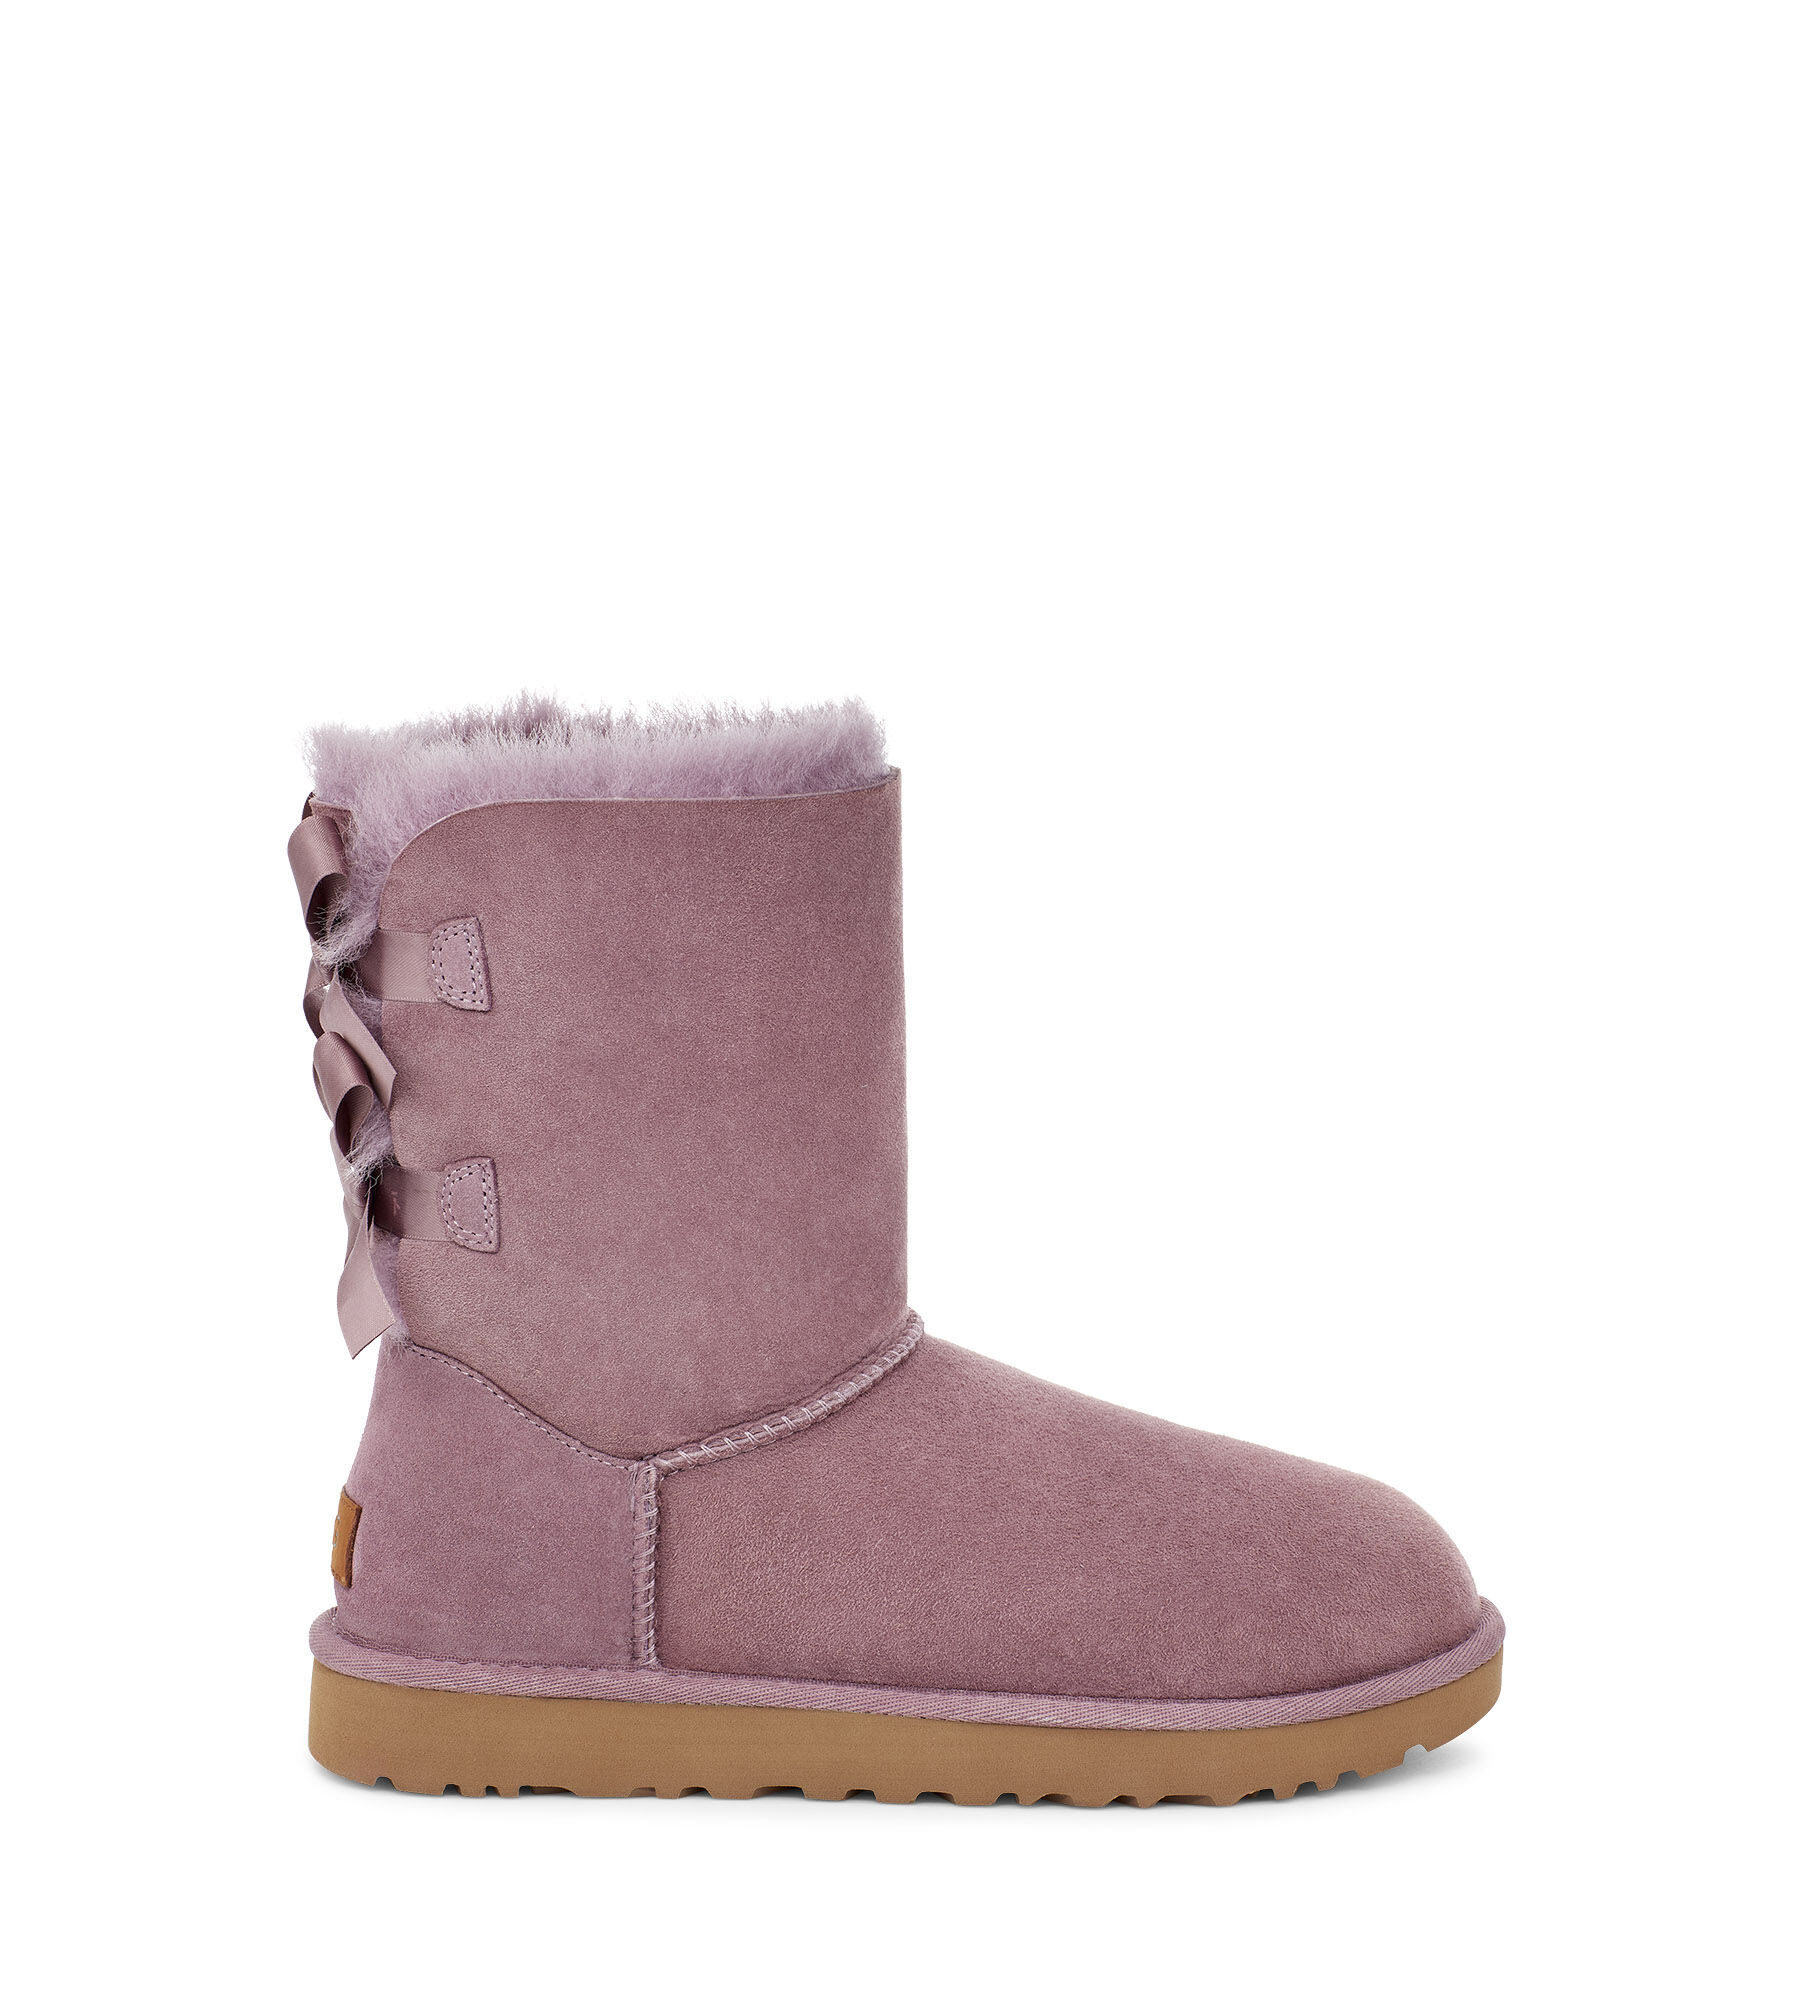 UGG Ugg Bailey Bow Ii Genuine Shearling Boot Black UGG Boots from Lyst   more